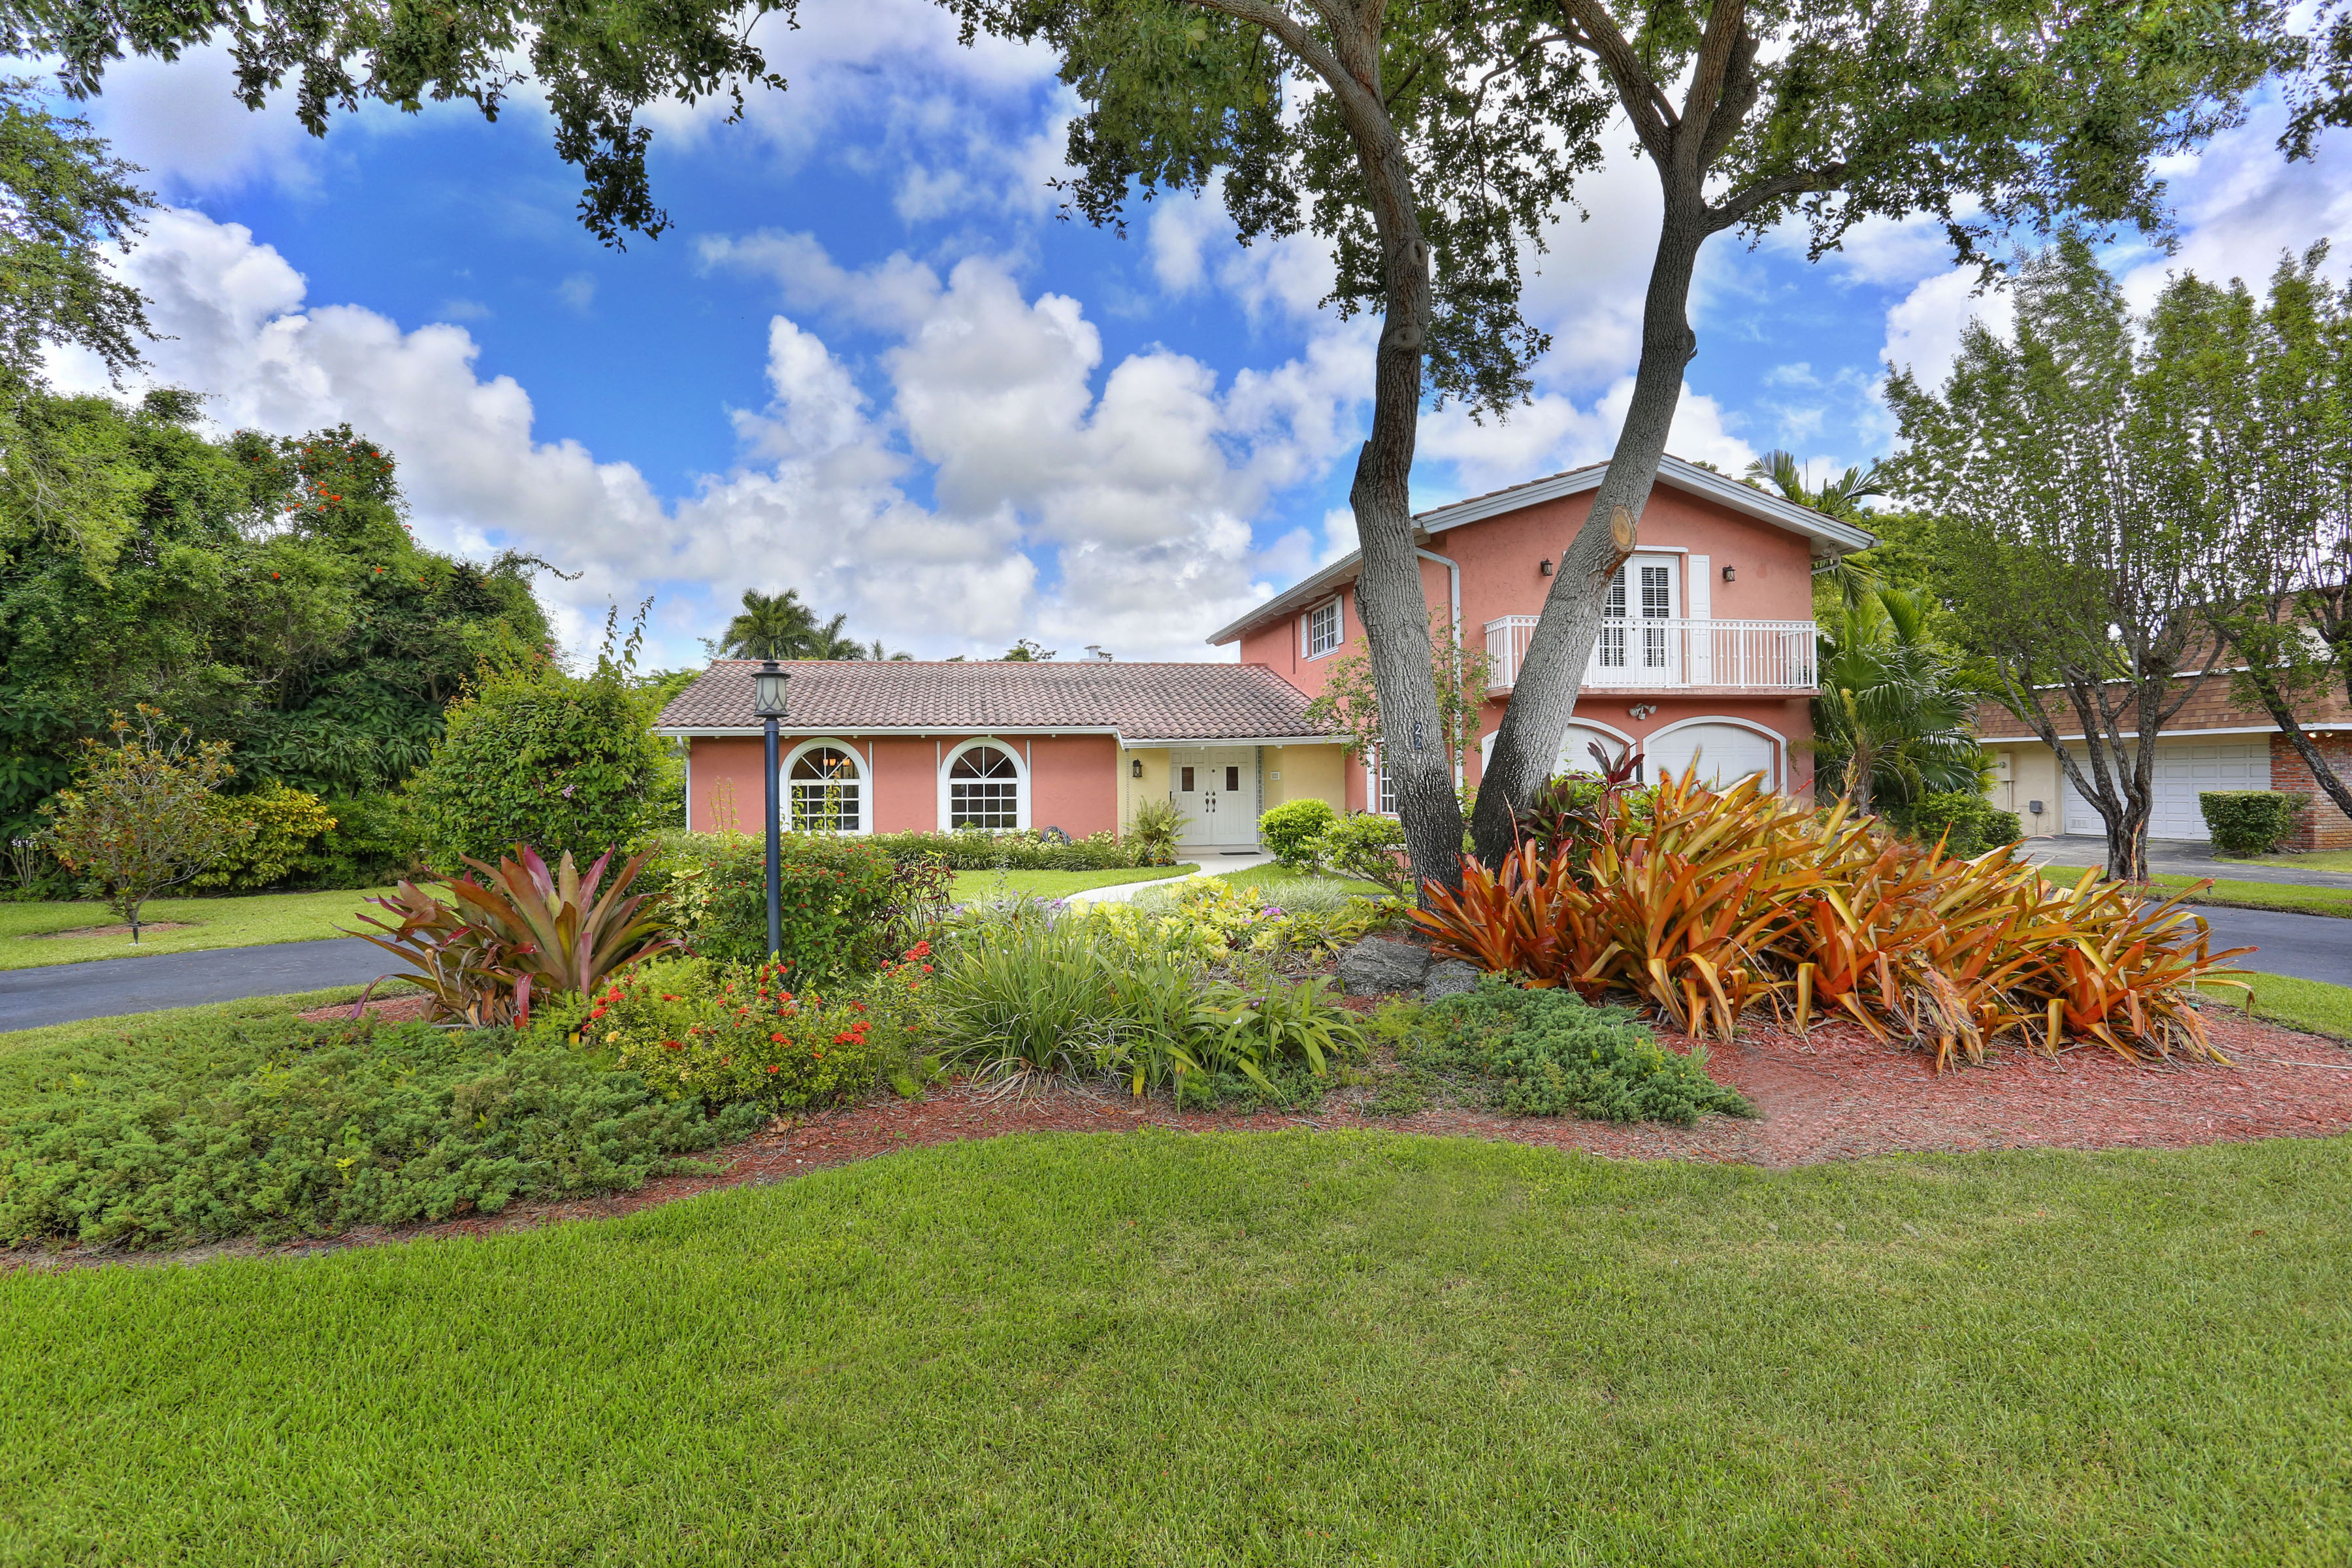 Single Family Home for Sale at 15122 Sw 74th Pl Palmetto Bay, Florida, 33158 United States